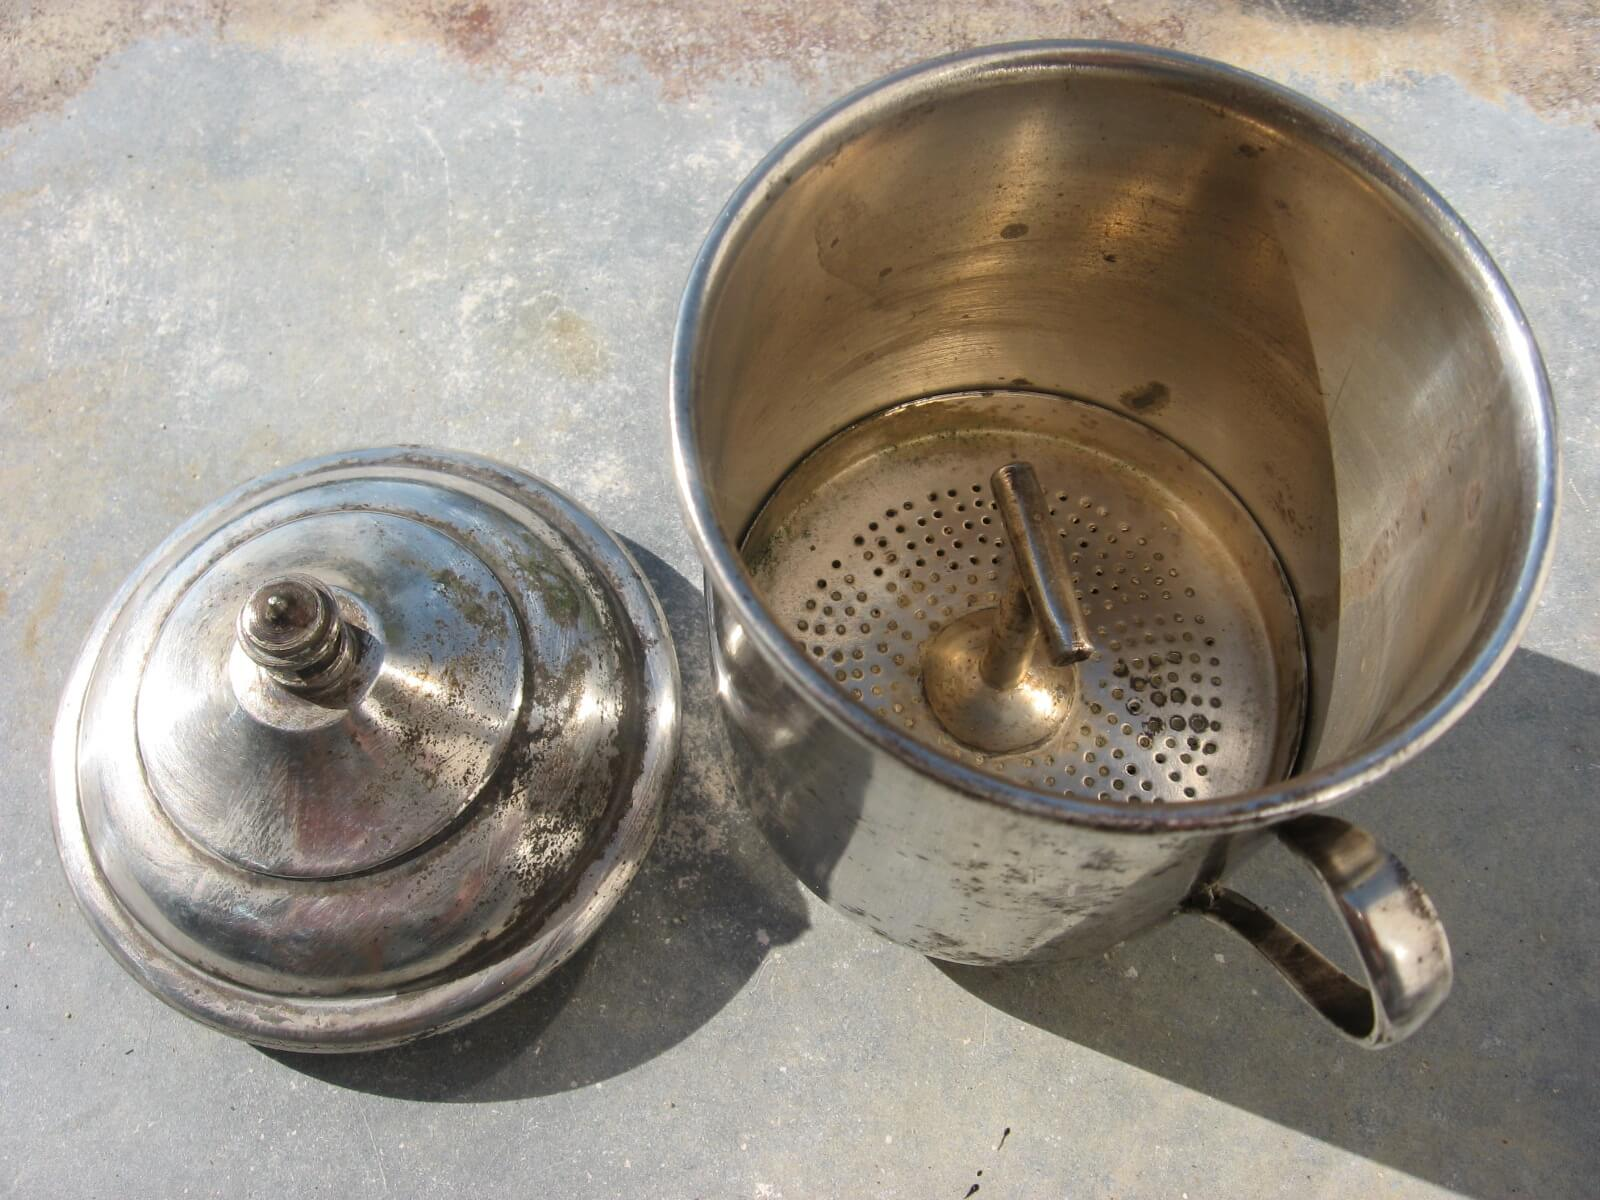 French silver one cup coffee filter at PumpjackPiddlewick